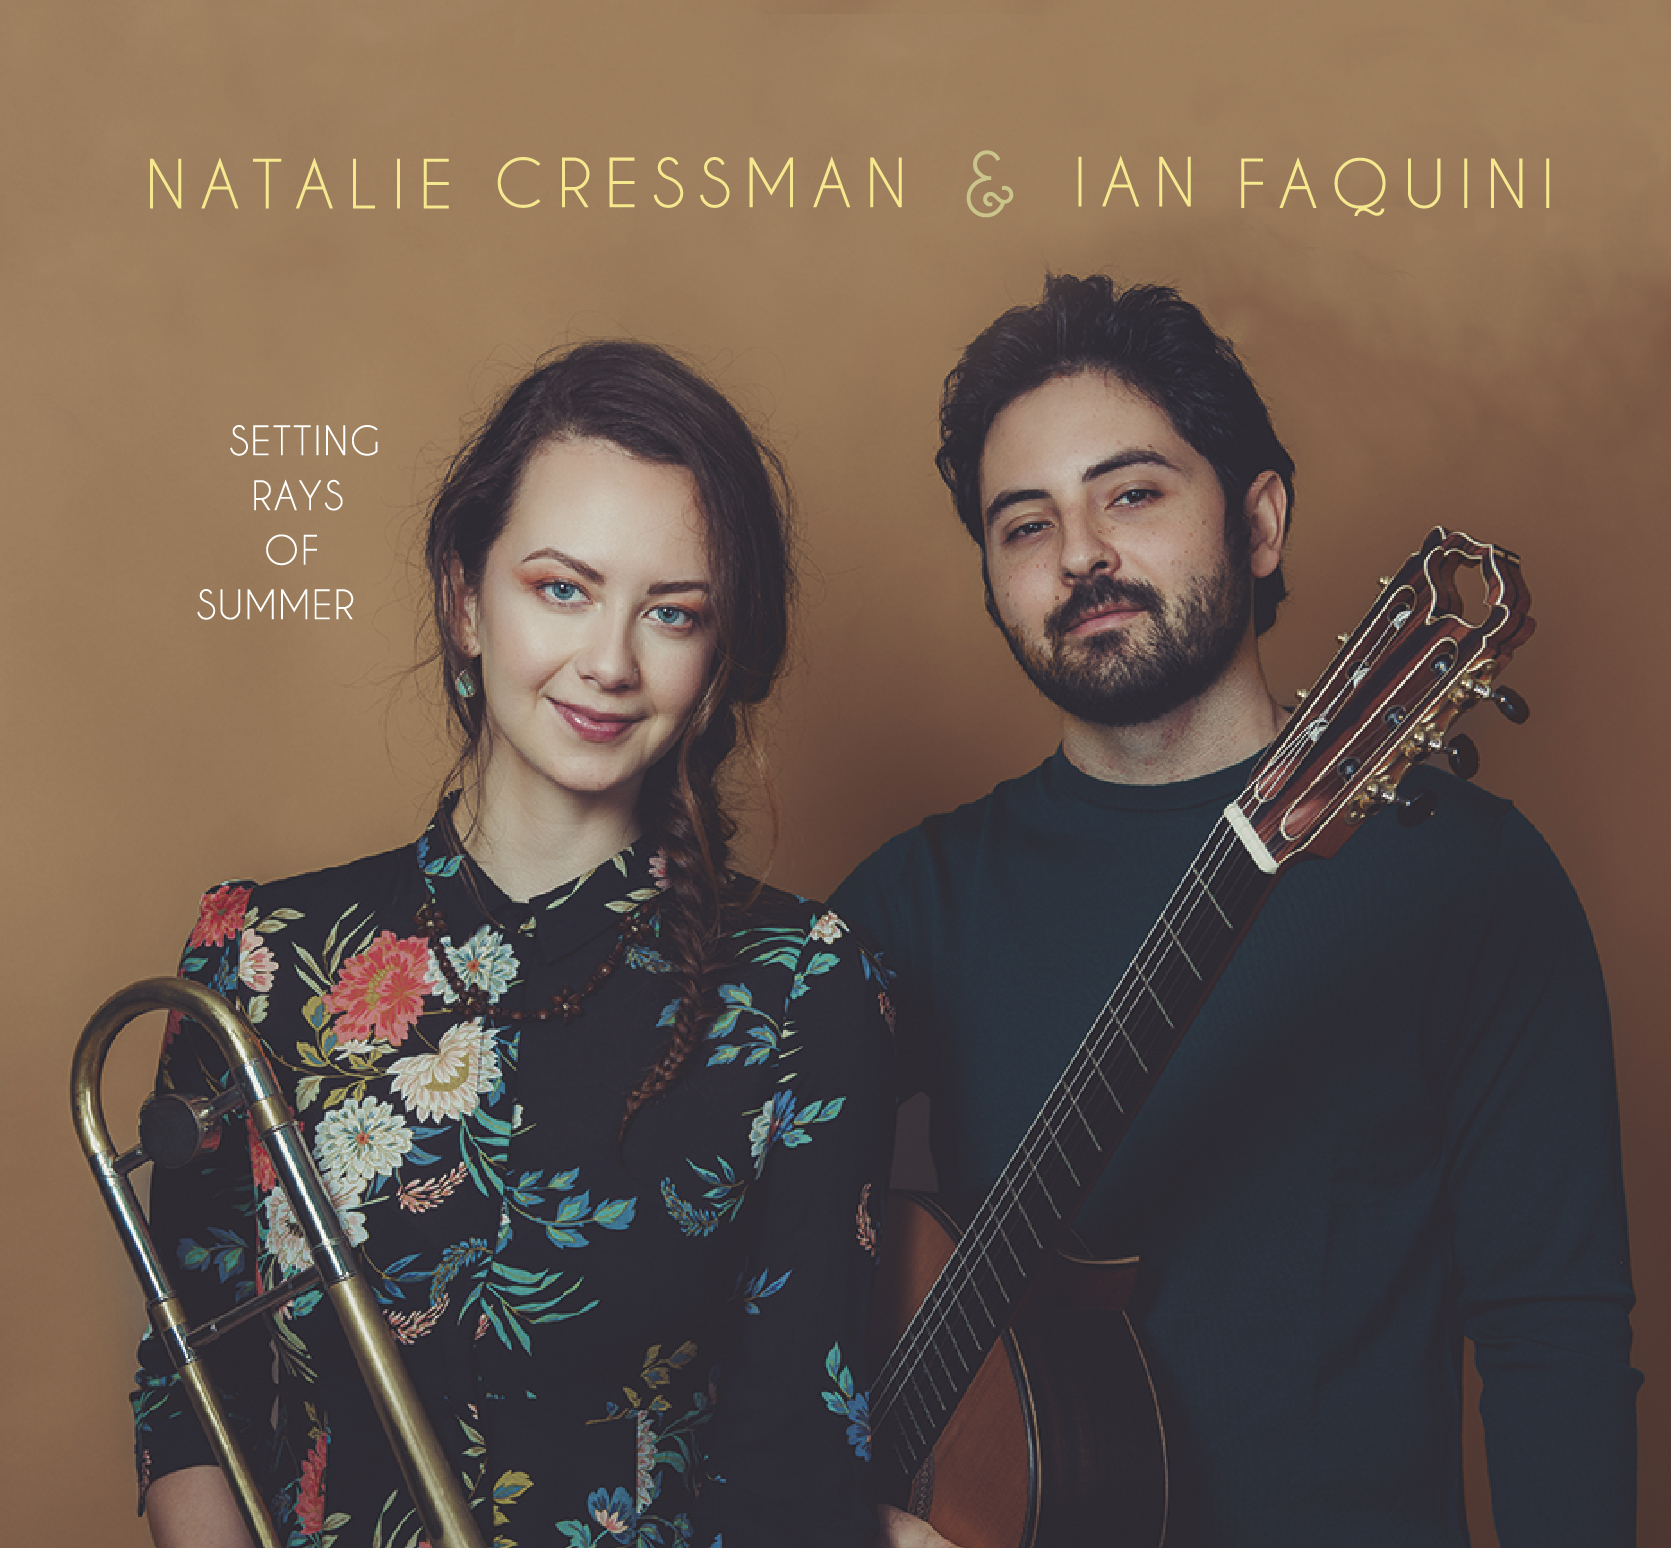 """OUT TODAY: Natalie Cressman & Ian Faquini Release Collaborative Album """"Setting Rays Of Summer"""""""